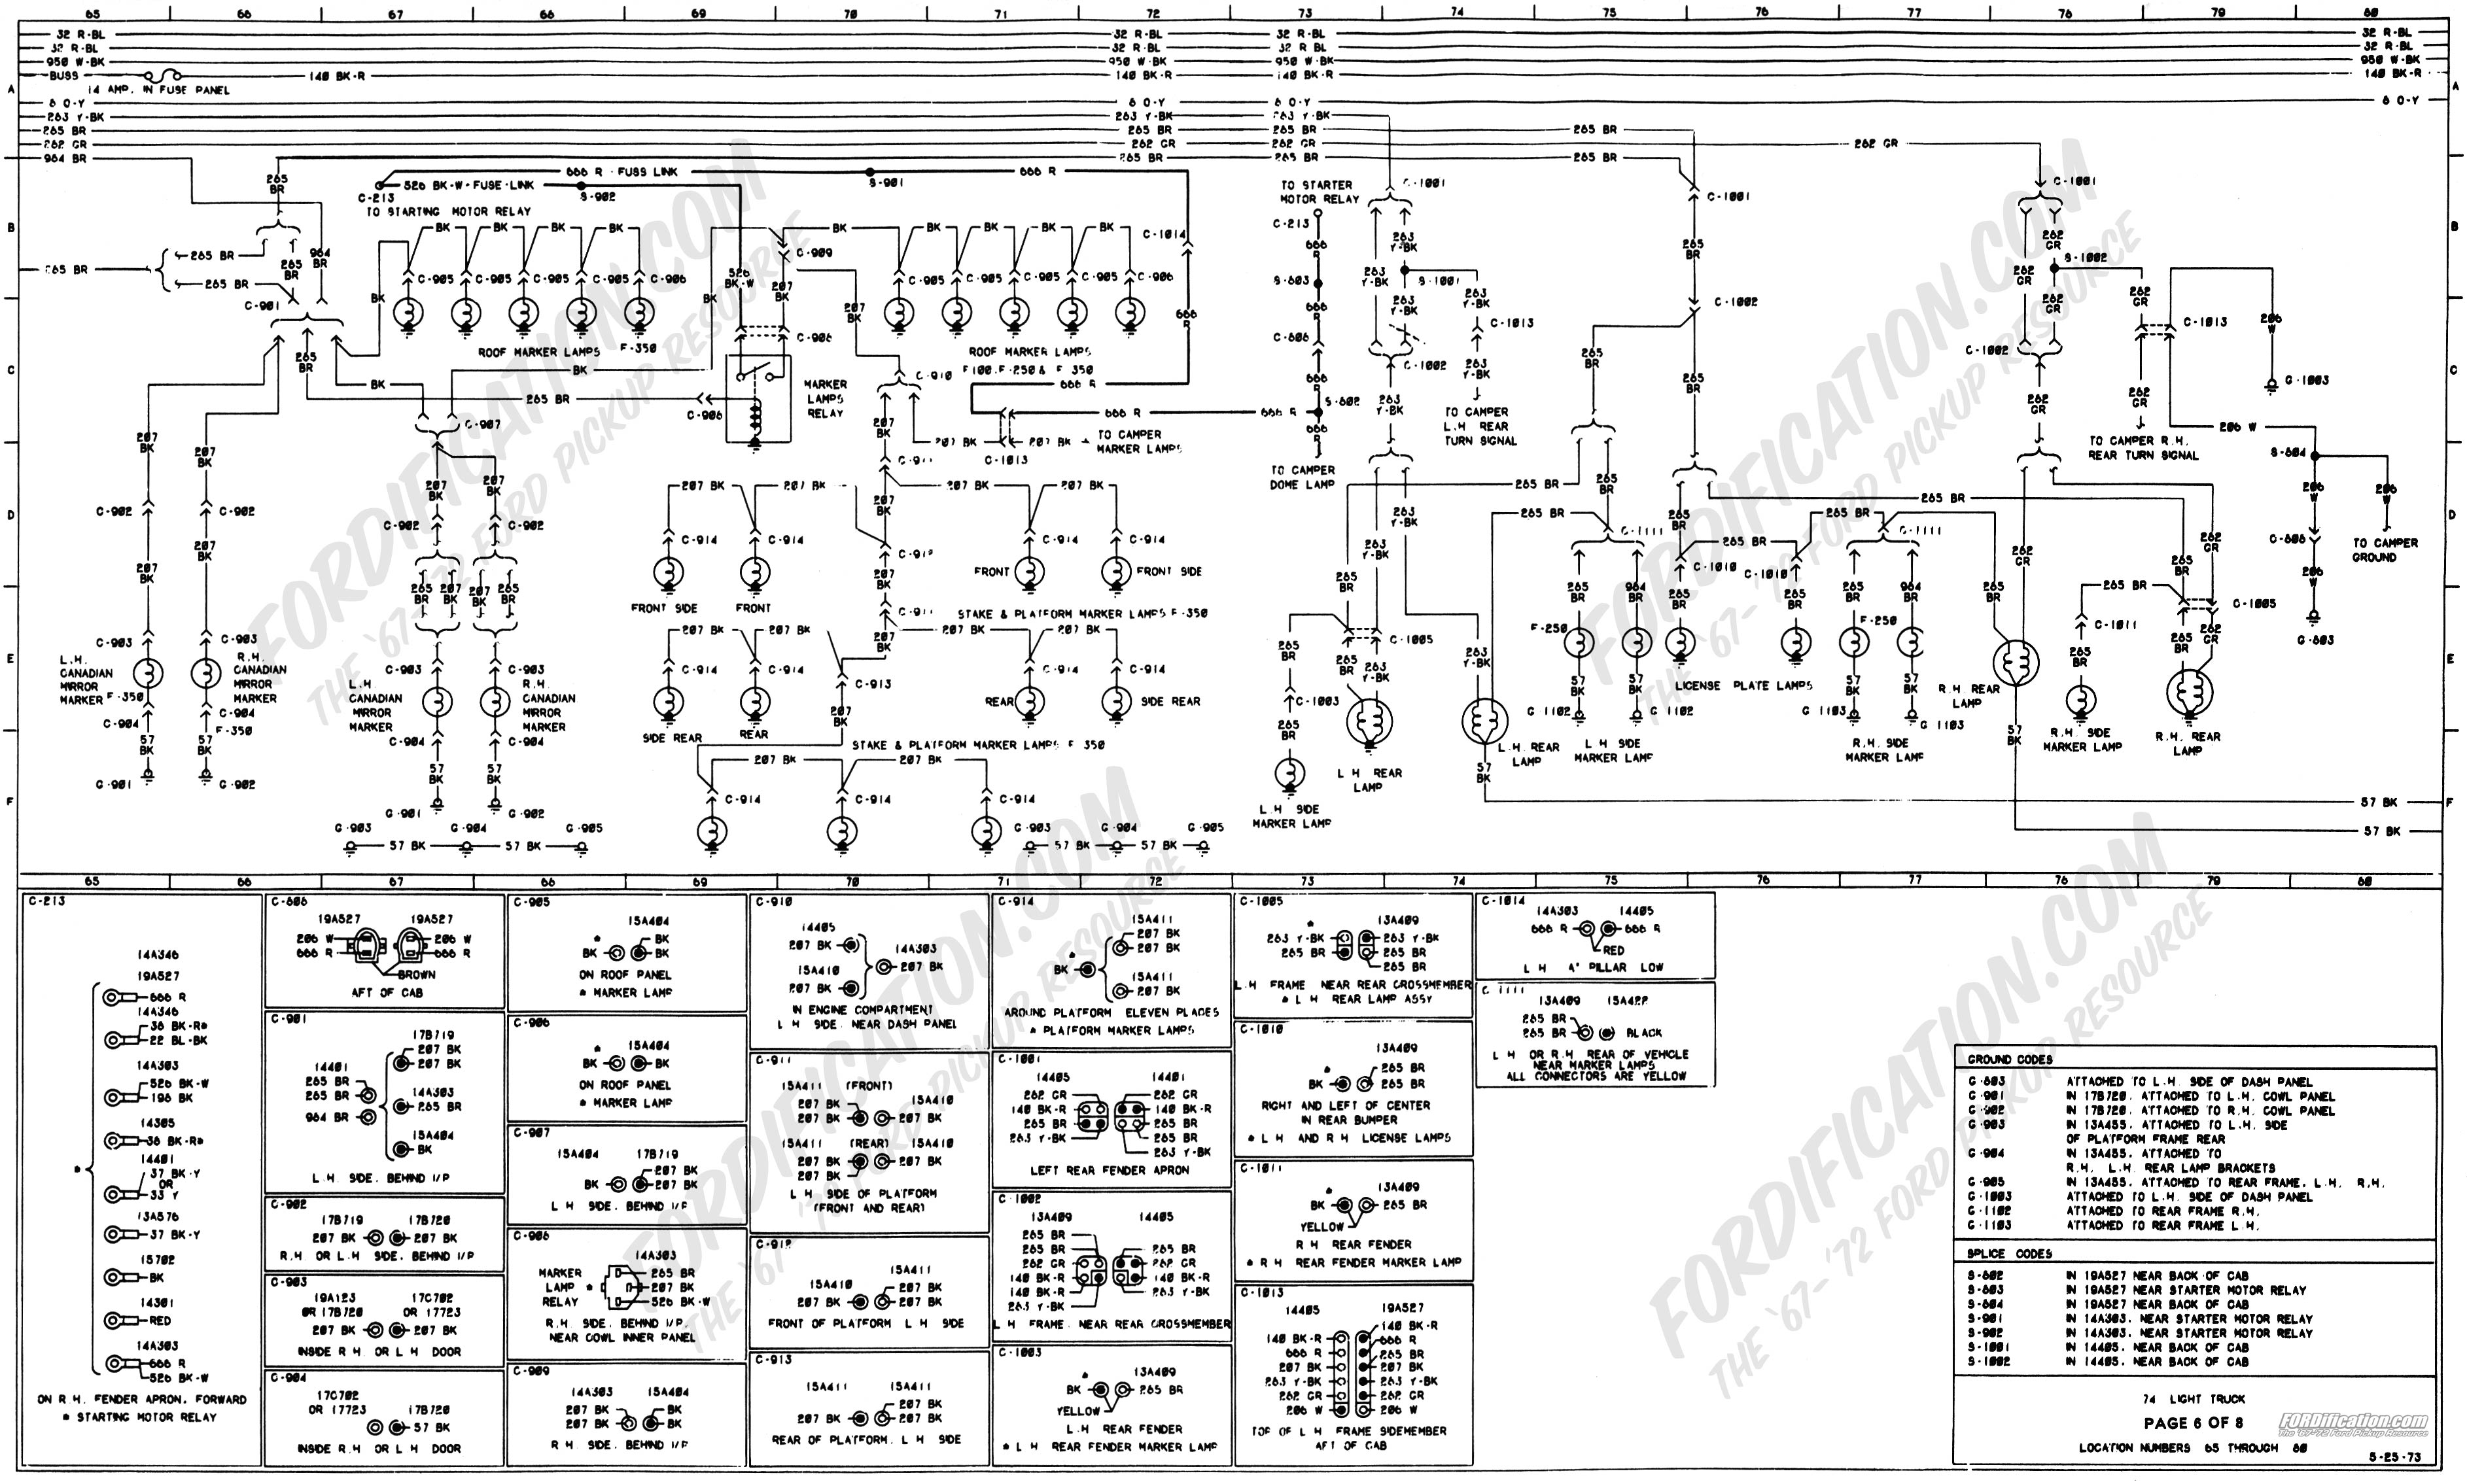 2006 F250 Wiring Cluster Information Of Diagram Ficm 1973 1979 Ford Truck Diagrams Schematics Fordification Net Rh Harness Radio